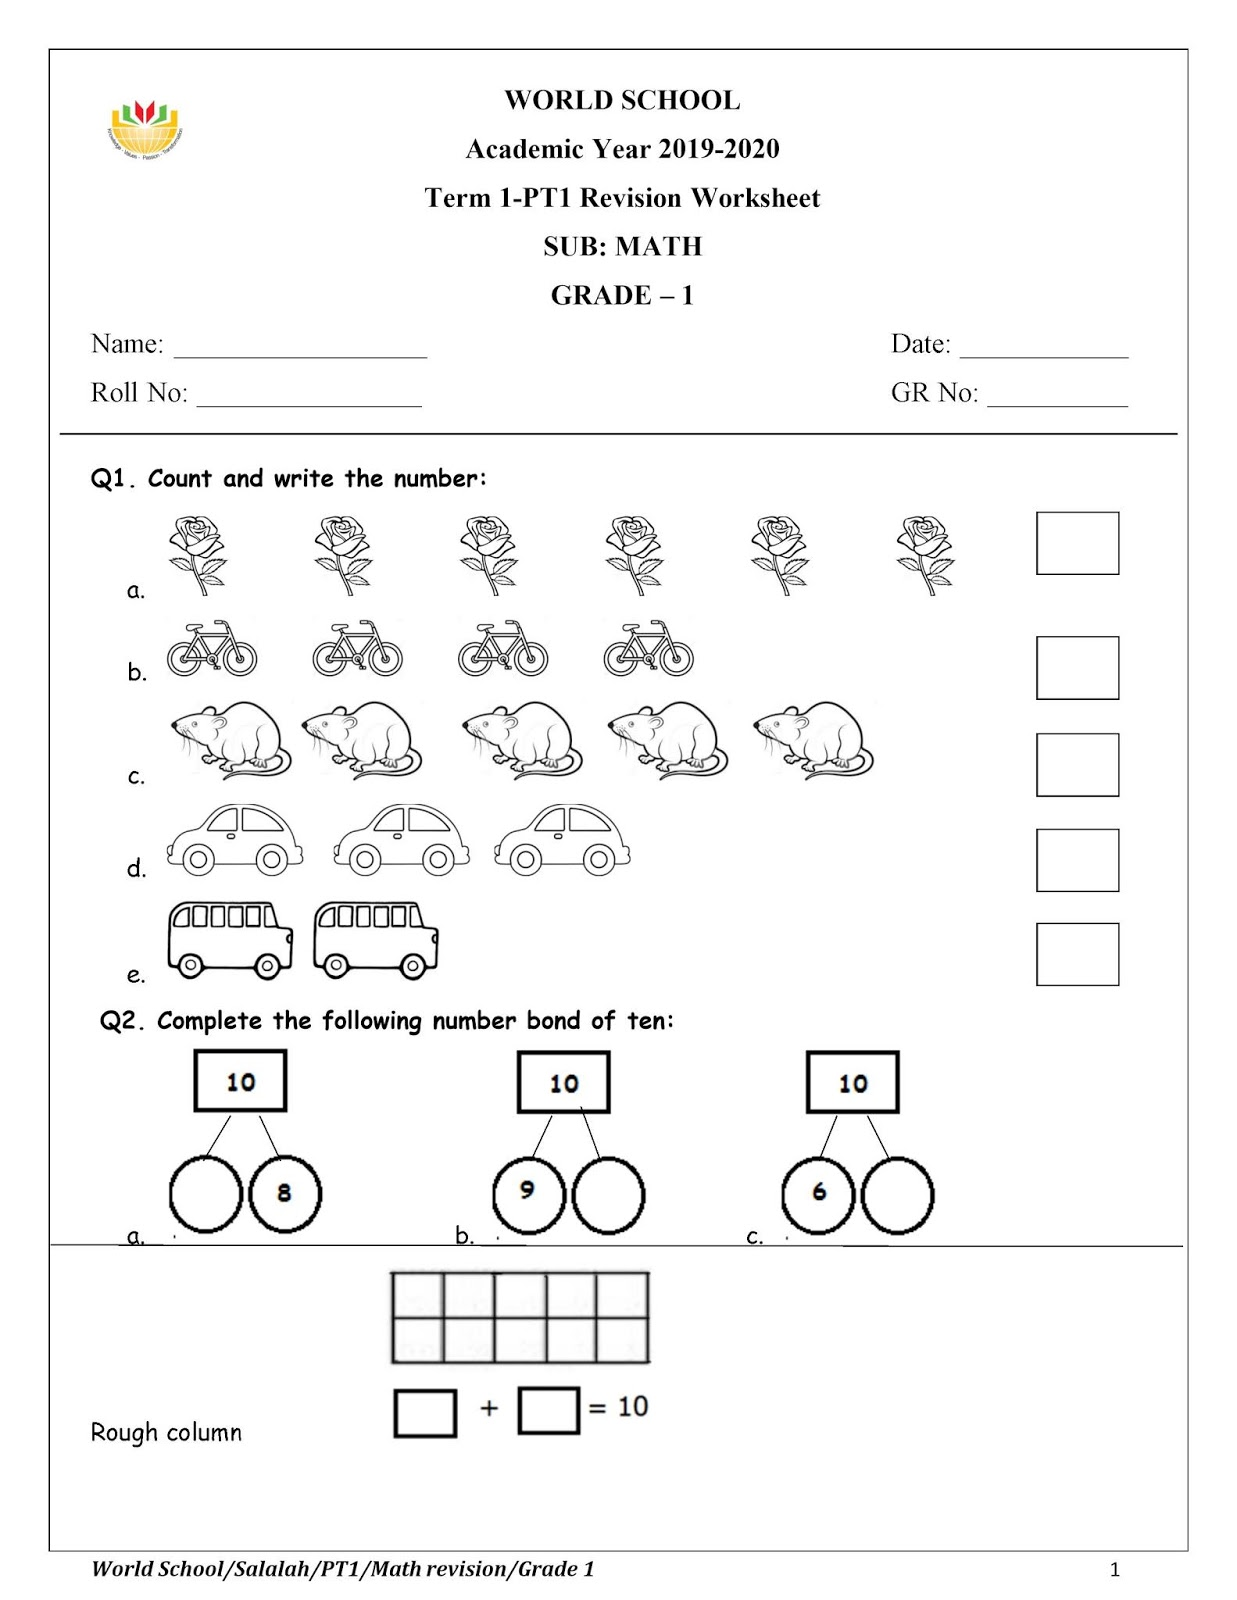 Birla World School Oman Revision Worksheet For Grade 1 As